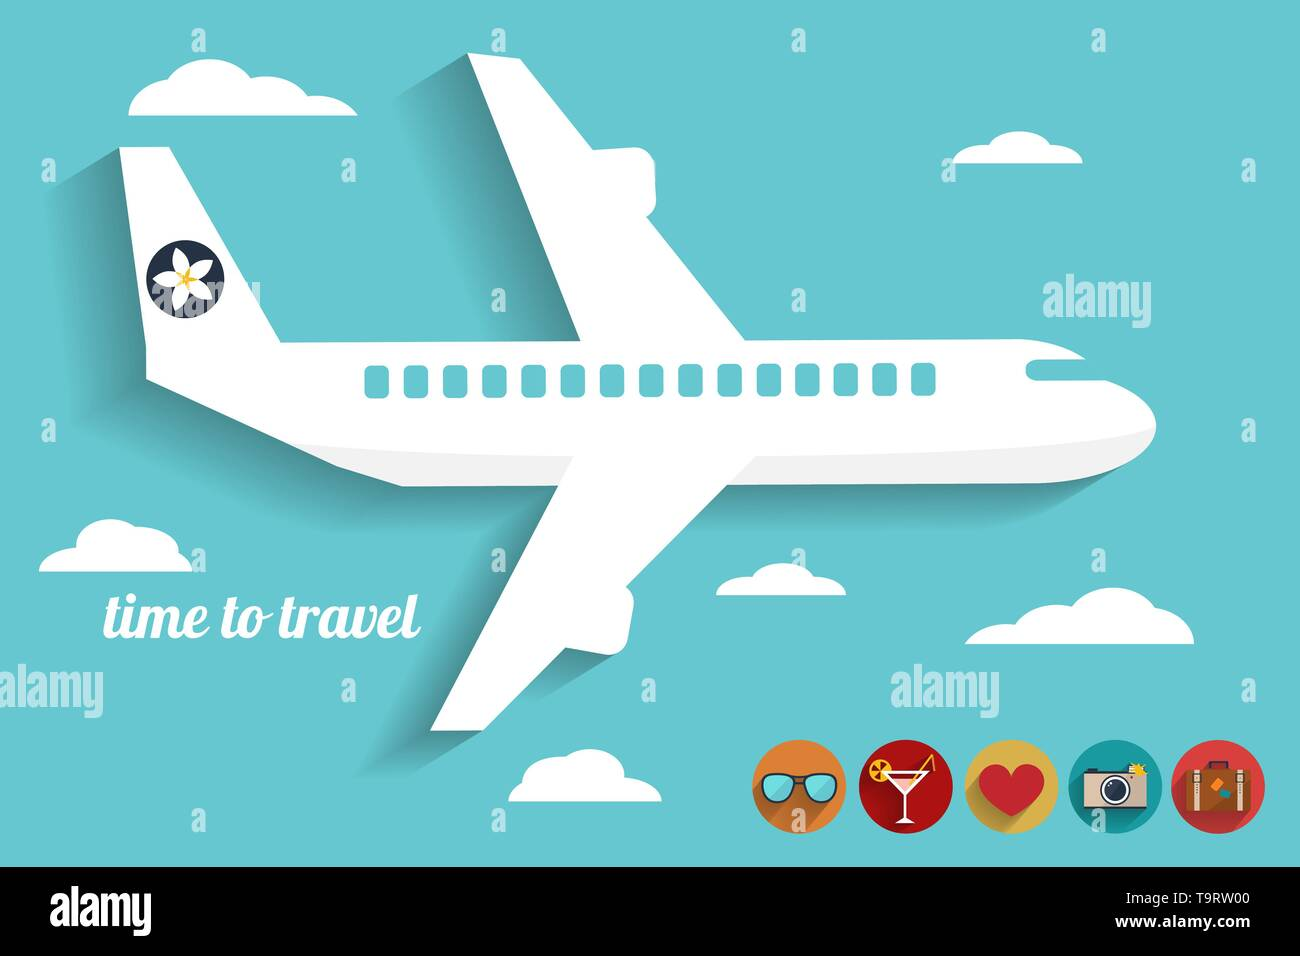 abstract illustration with airplane in the blue sky, travel icons and slogan 'time to travel' vector card template - Stock Vector